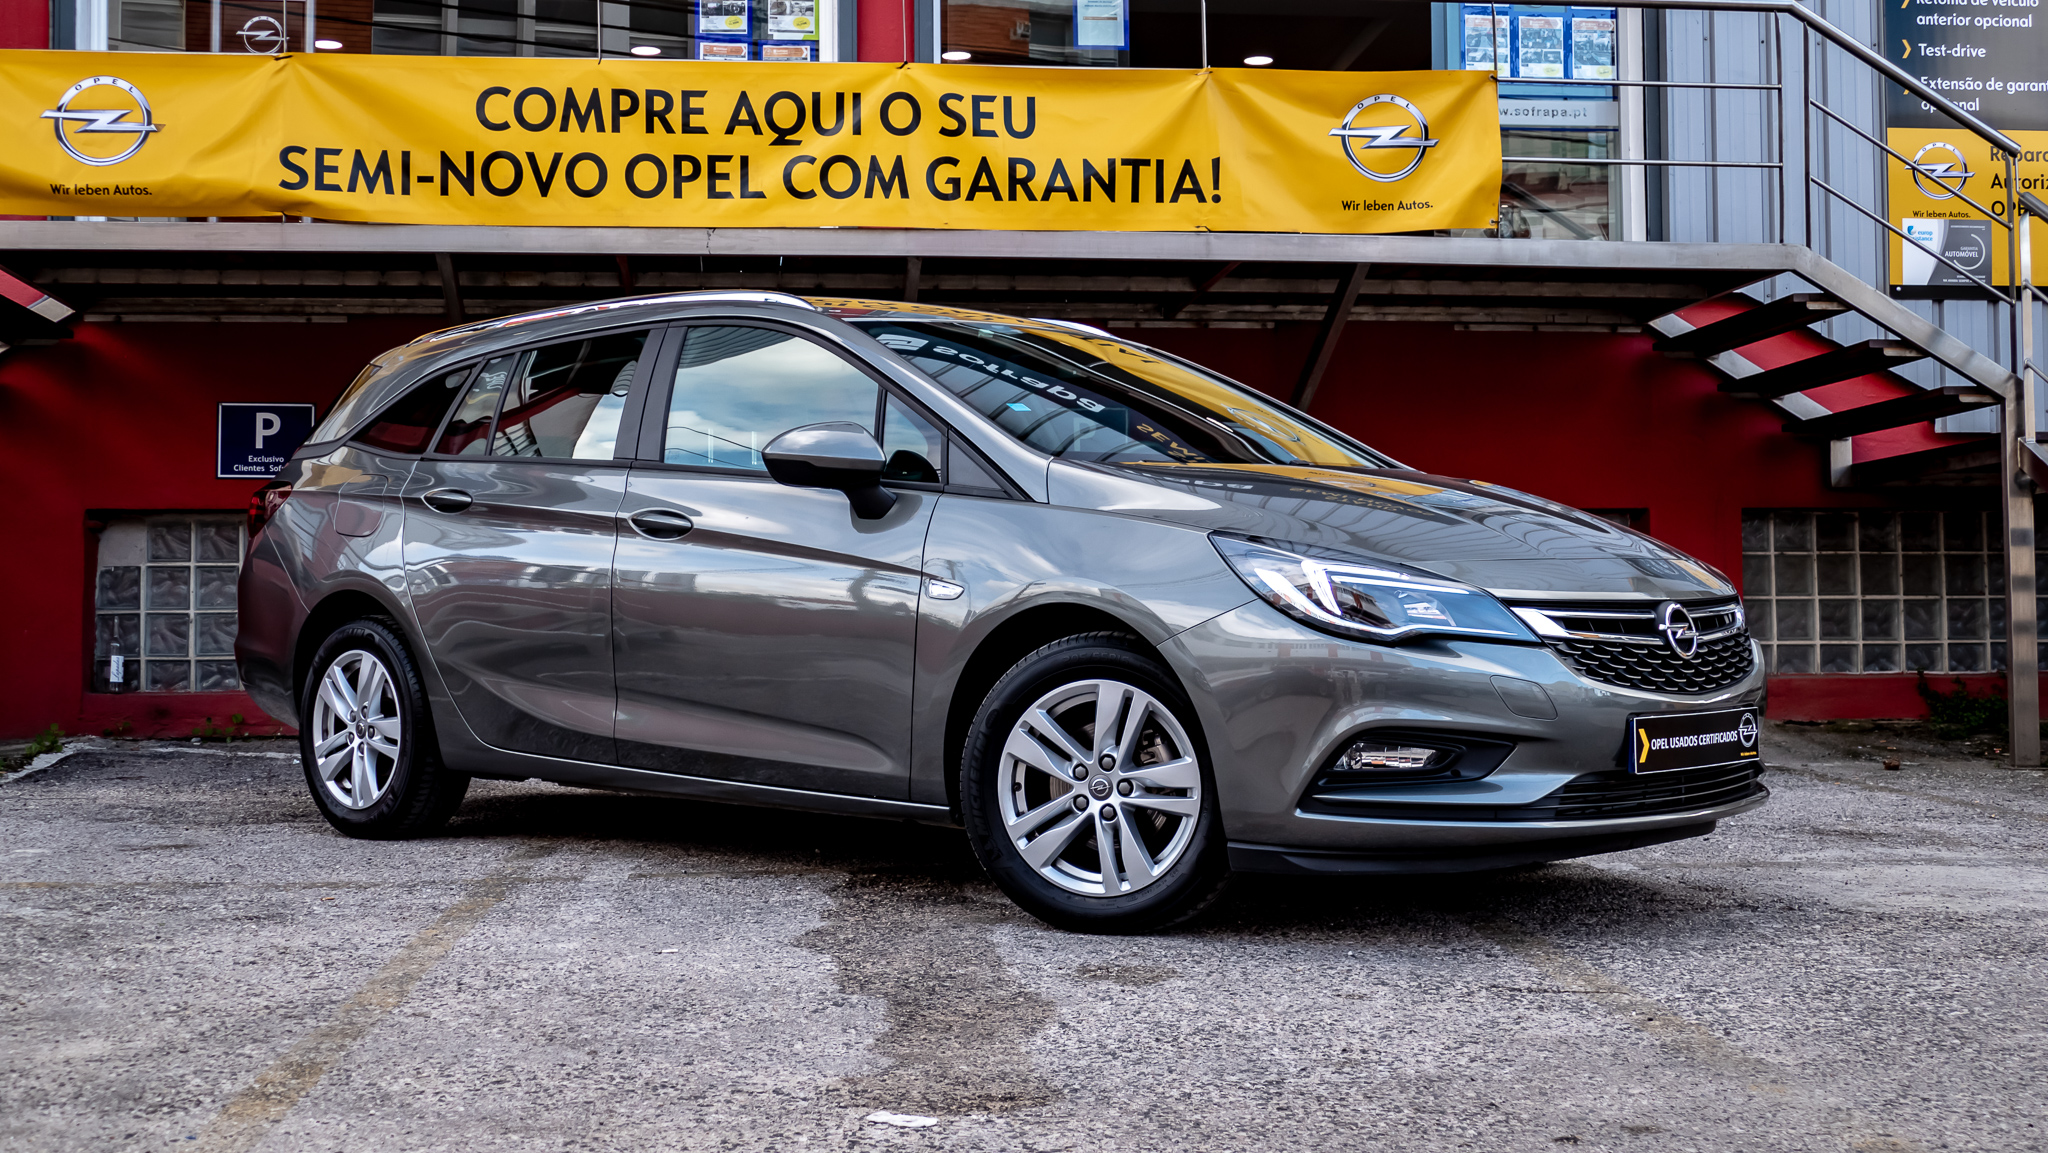 Opel ASTRA 1.6 CDTi Sports Tourer 1.6 CDTI ACTIVE 2018